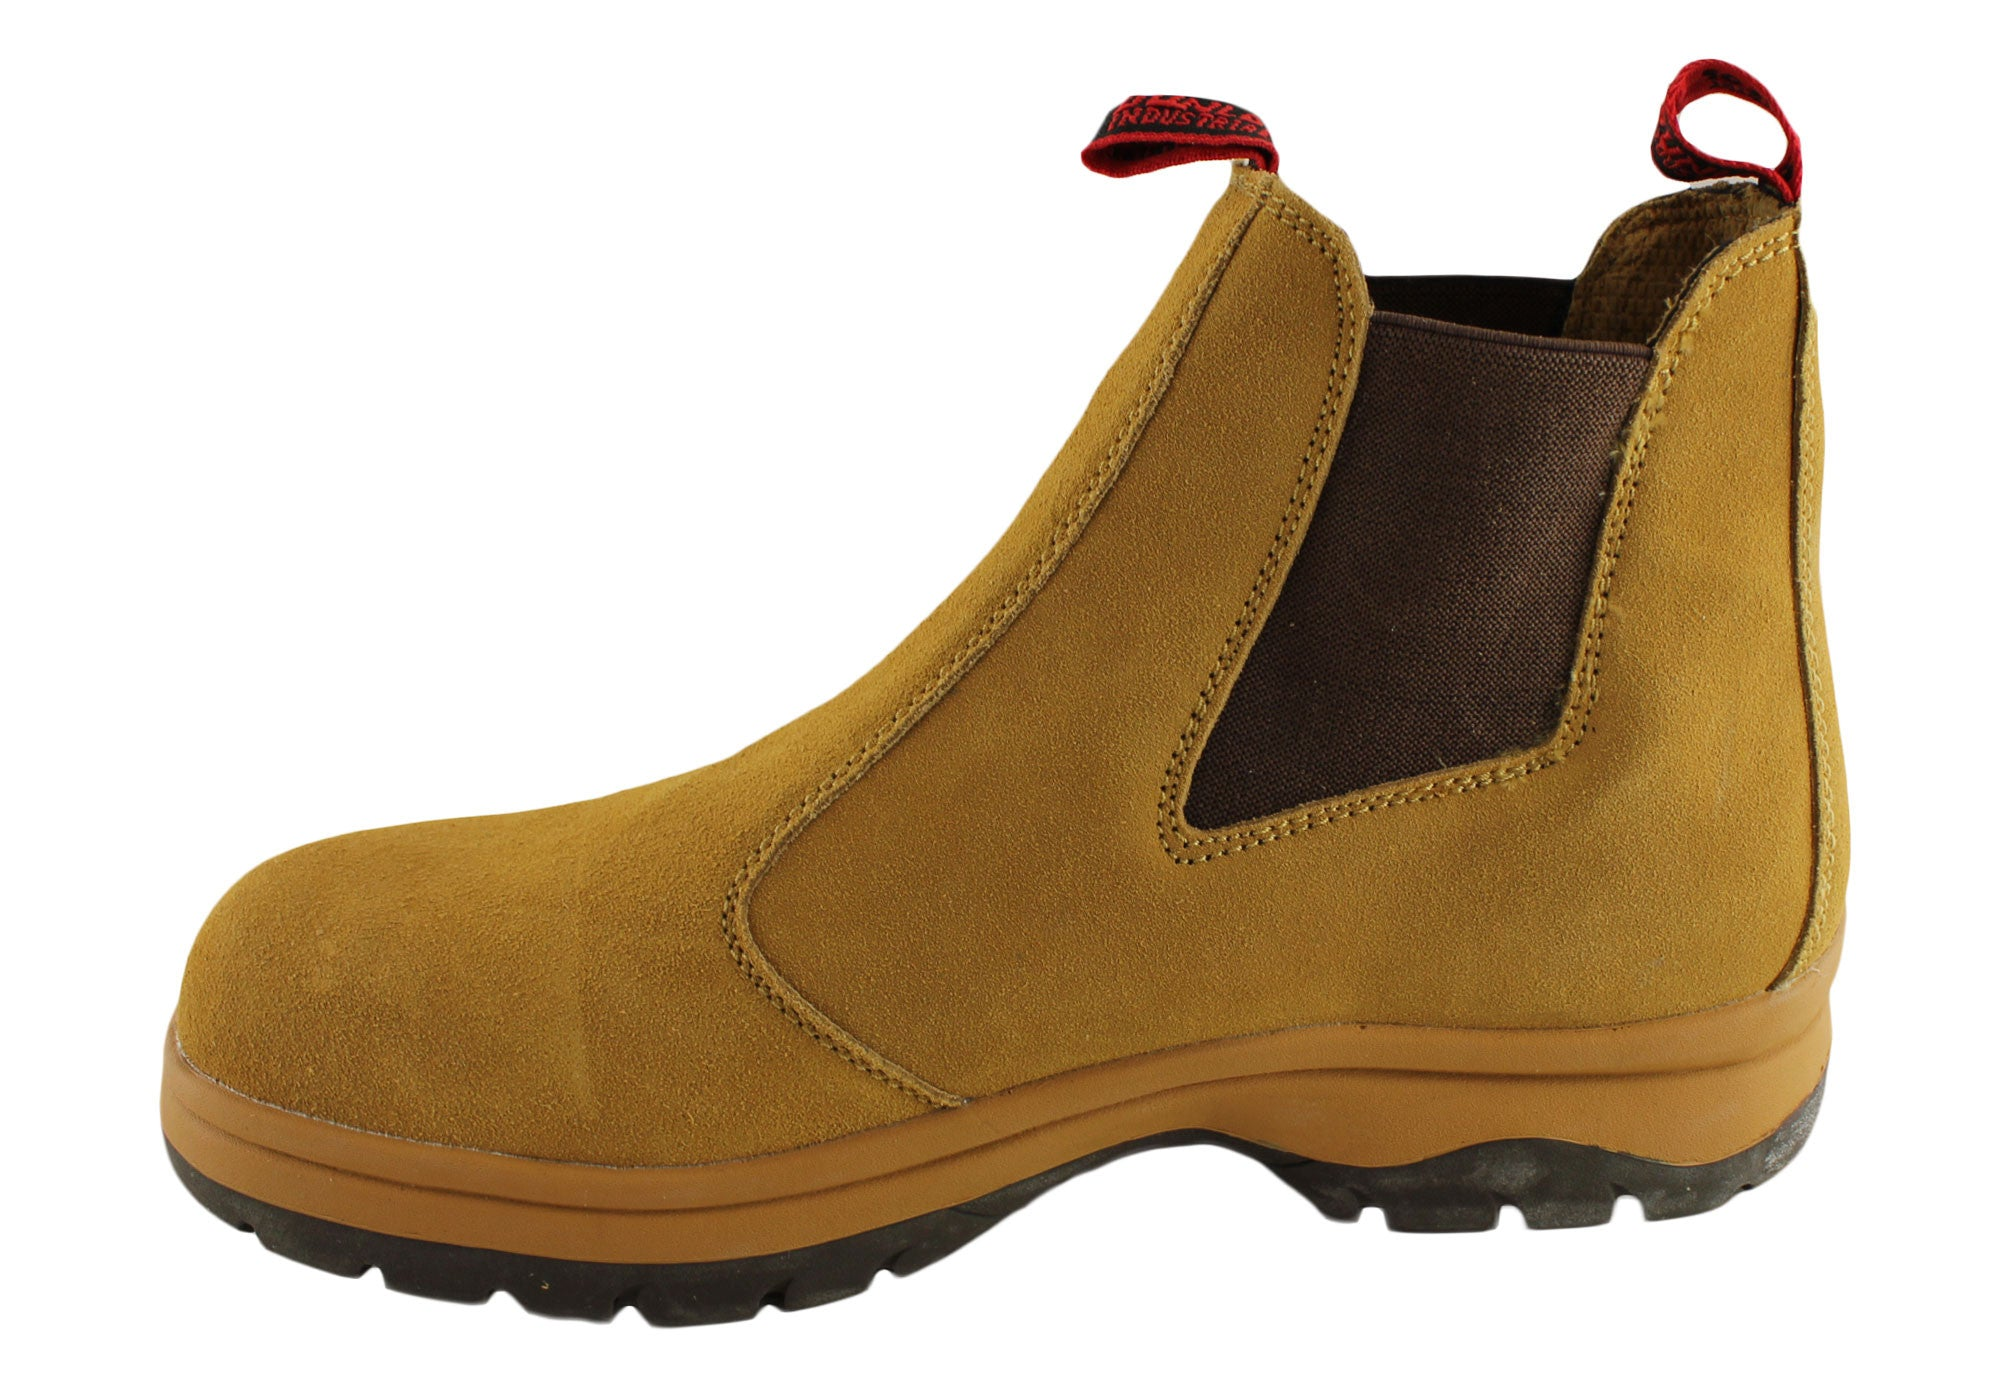 Dunlop Hammer Mens Safety Steel Toe Boots Brand House Direct